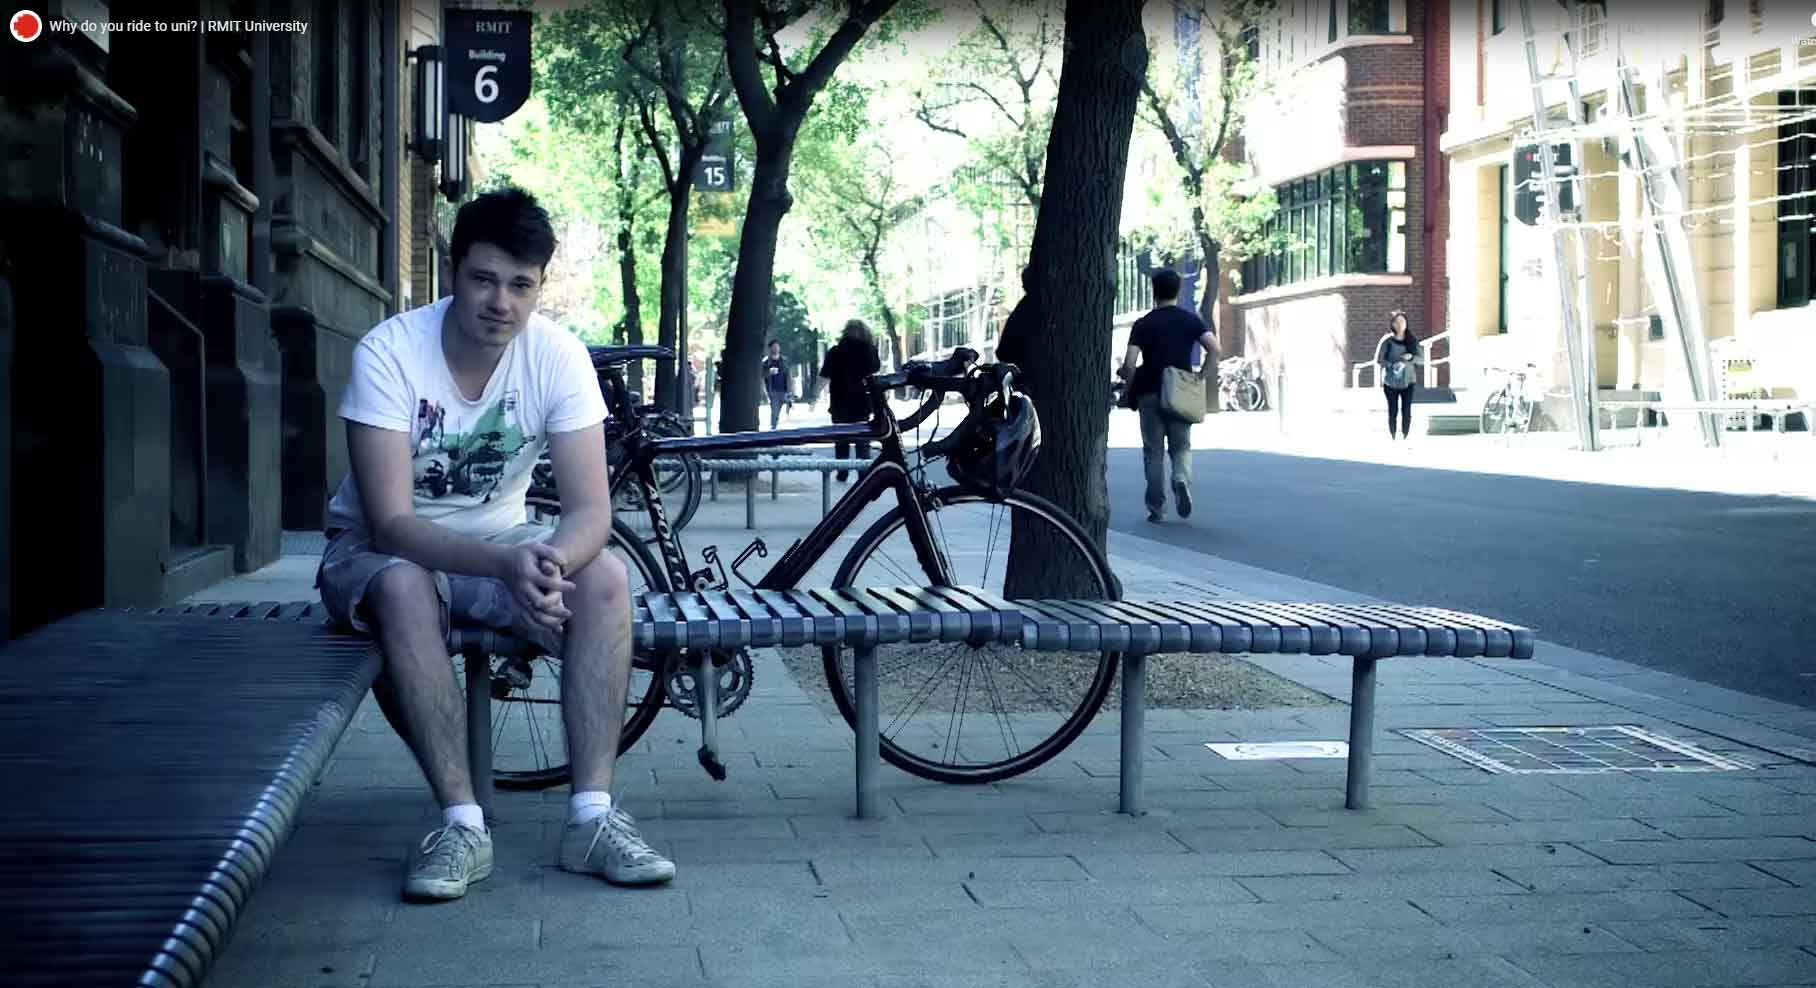 Image of student outside RMIT building with his bike